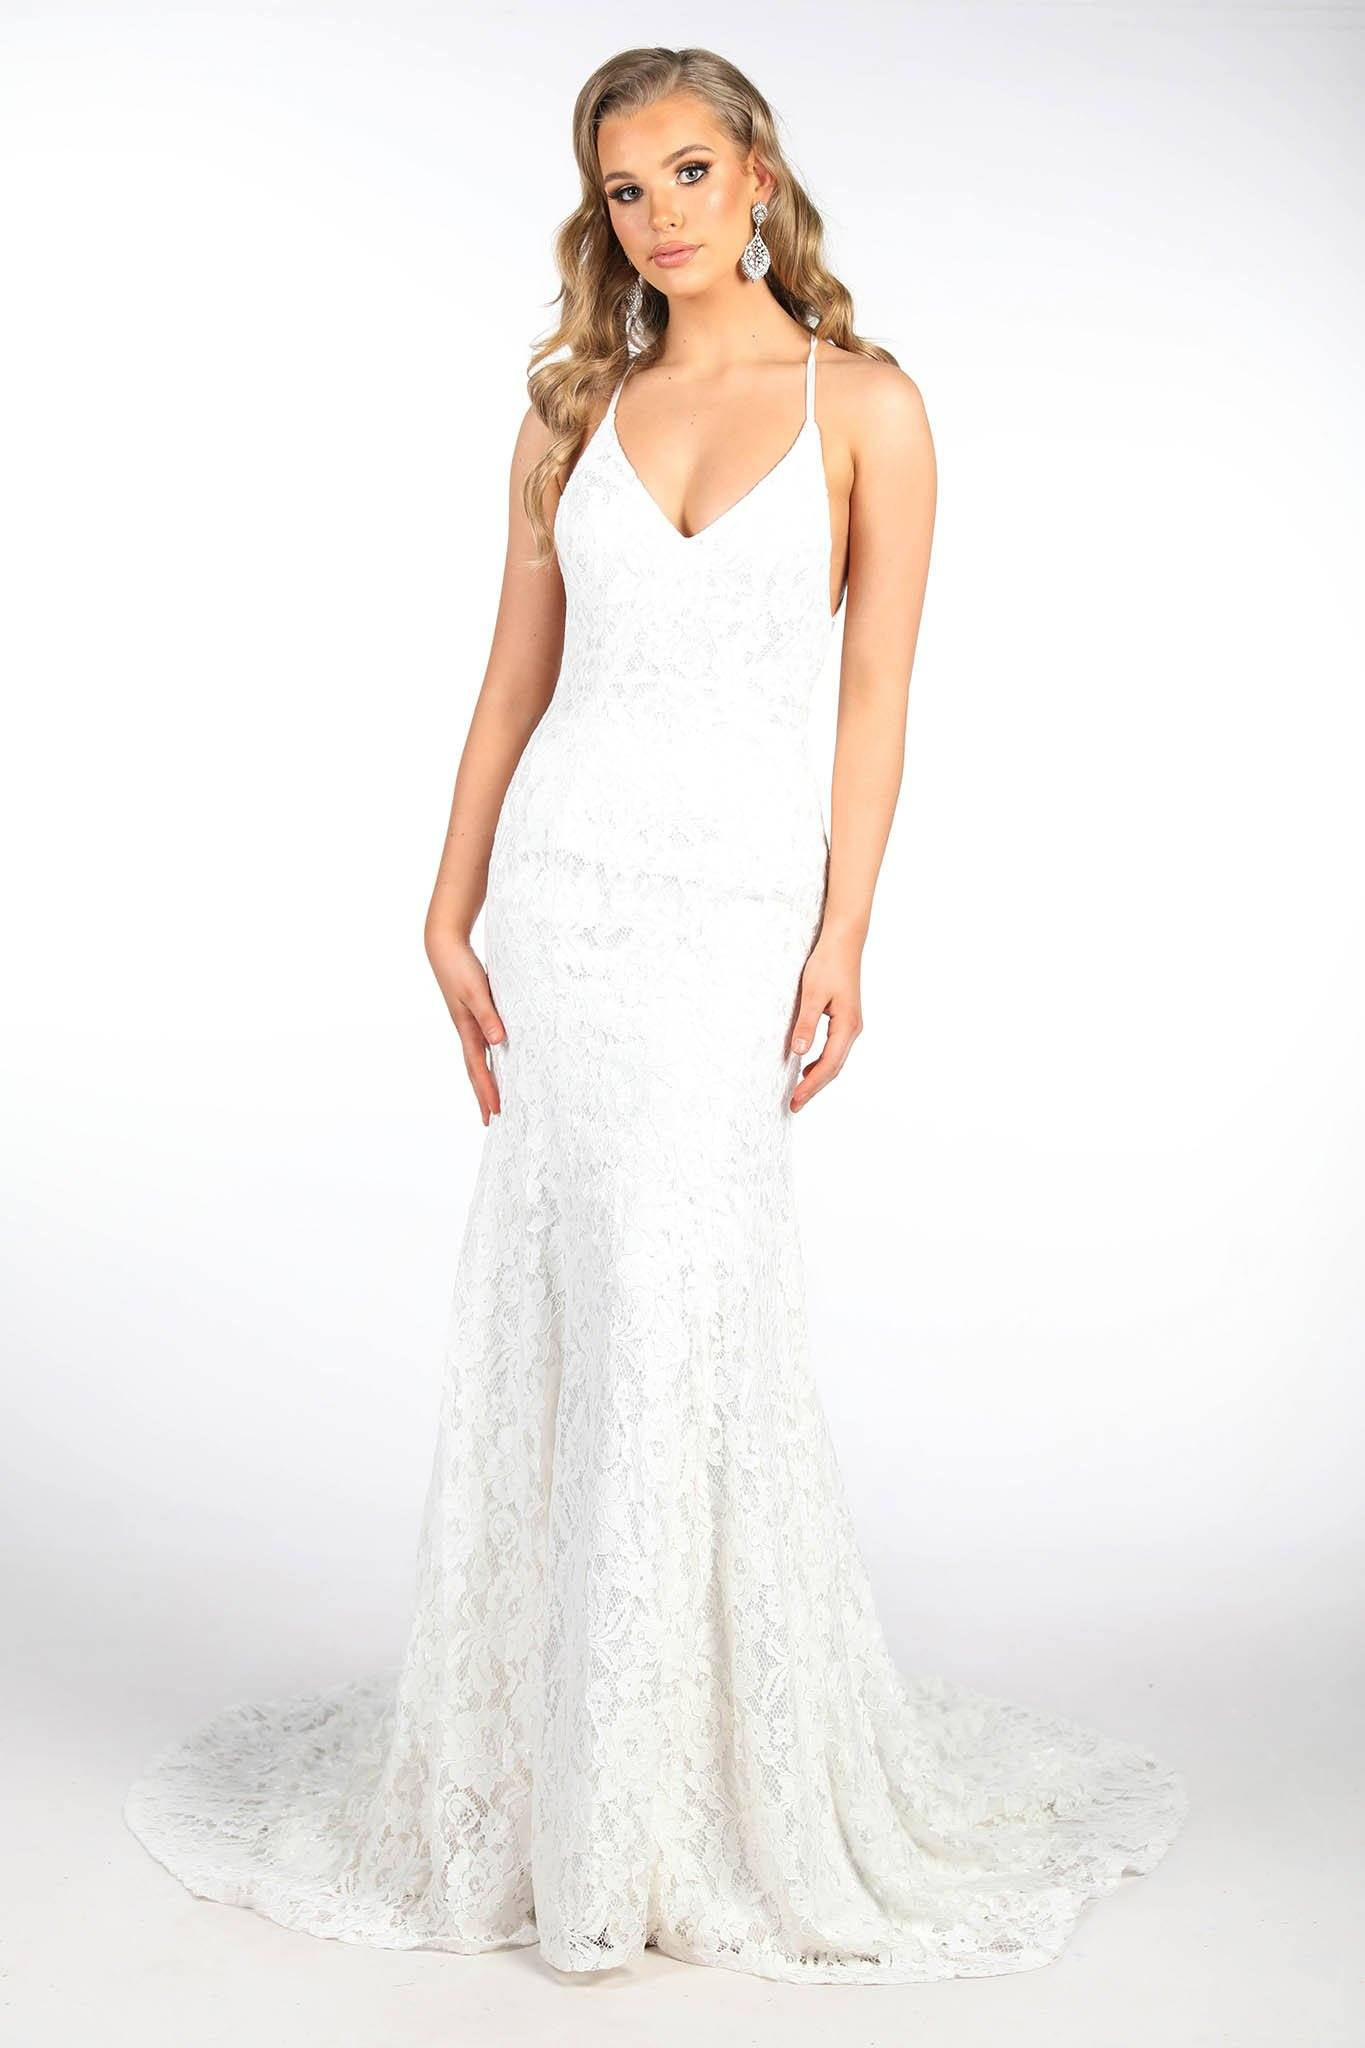 White Full Length Lace Evening Gown with Full White Lining, Deep V Neckline, Lace Up Open Back Design and Long Train